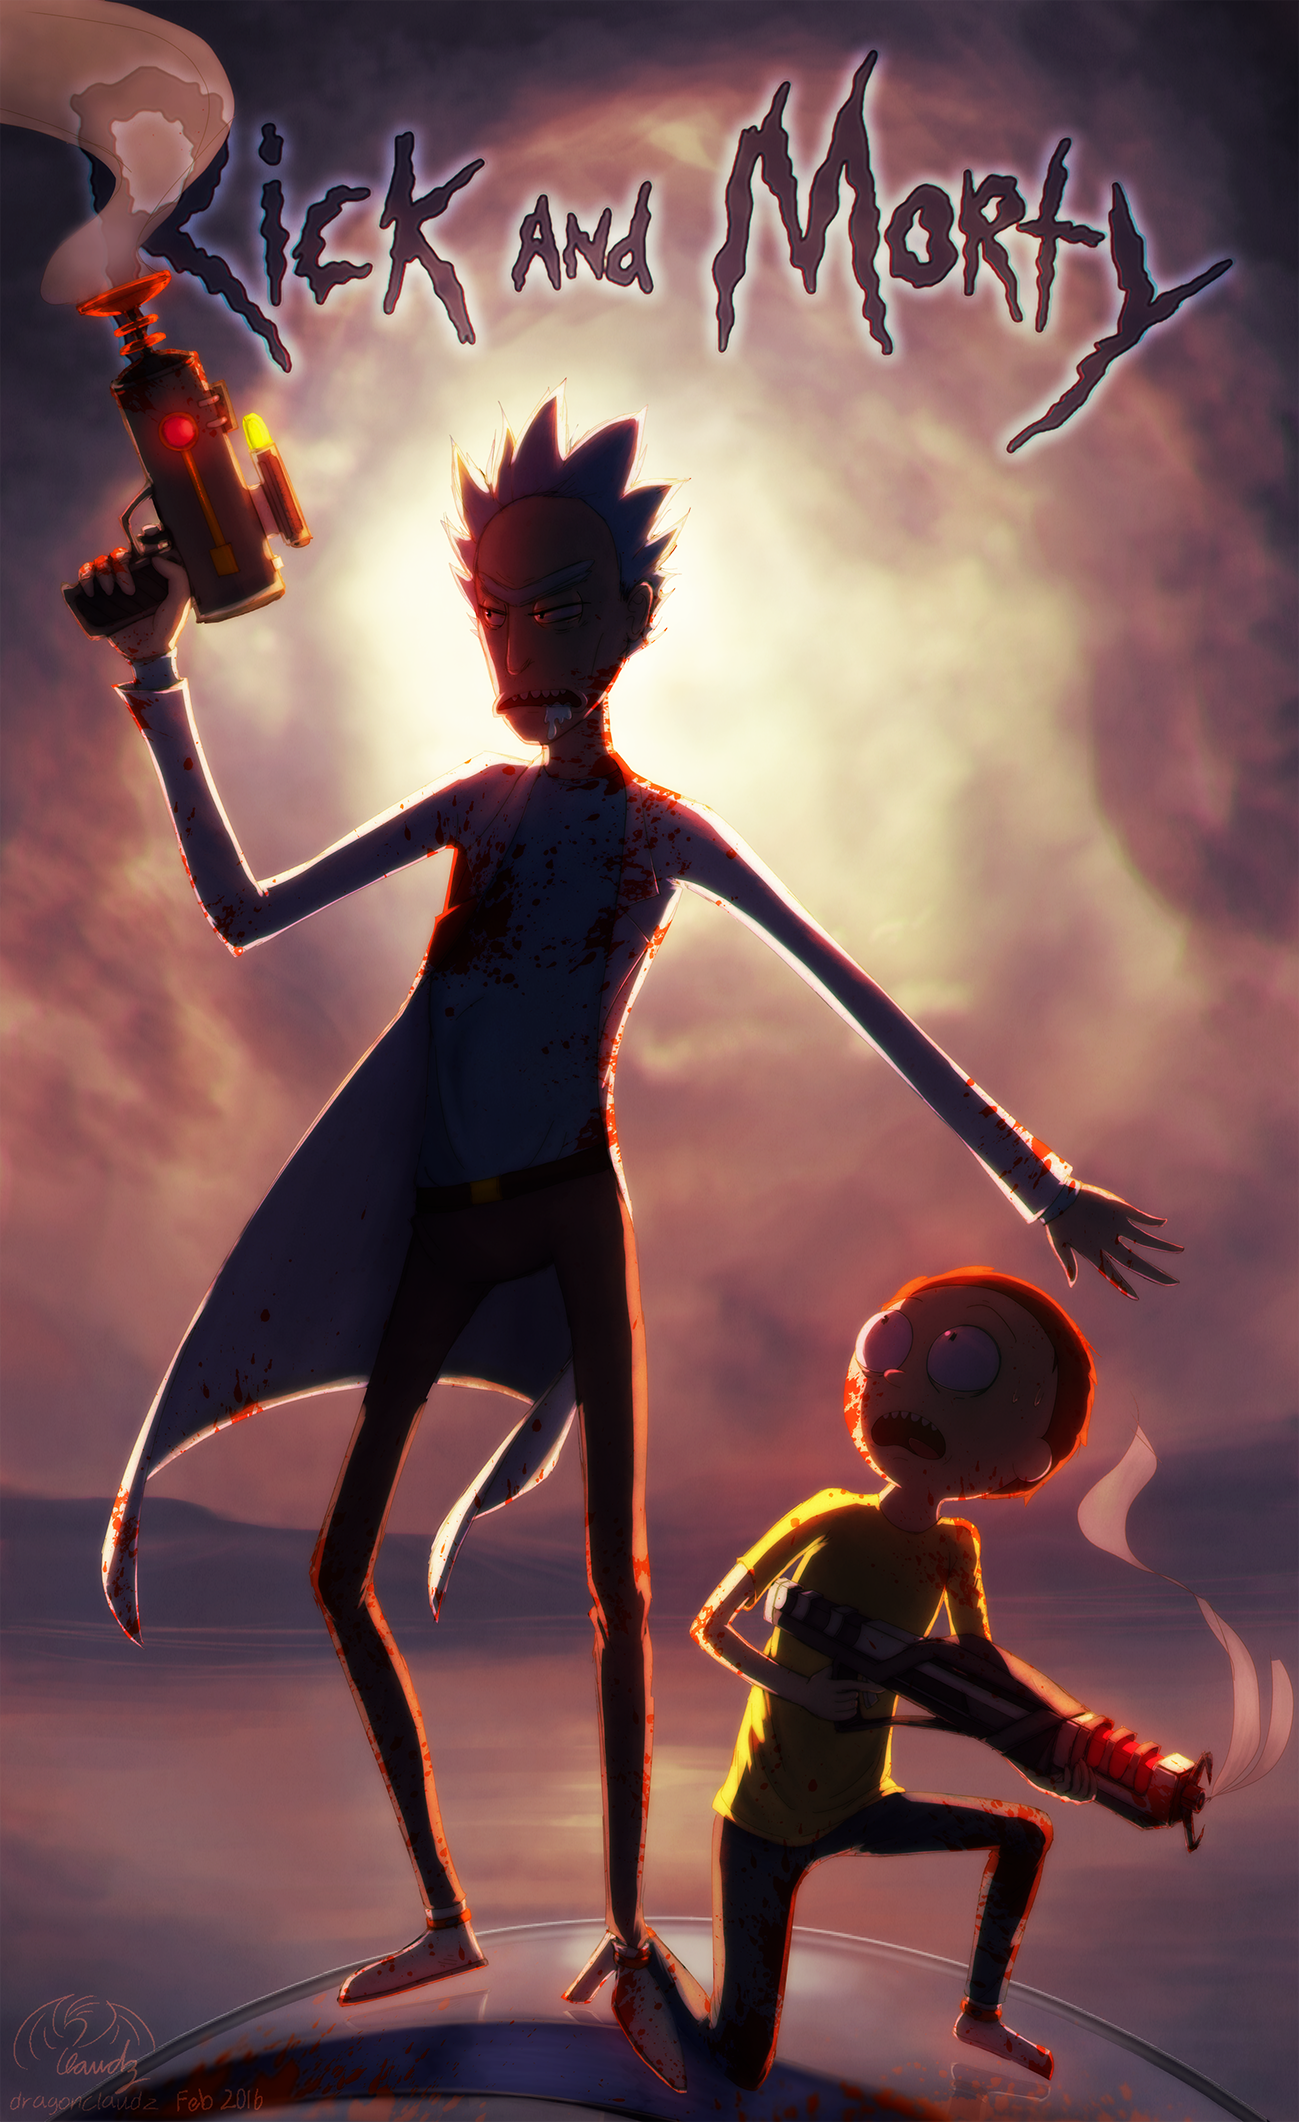 Rick And Morty Overly Dramatic Poster Rick And Morty Poster Rick And Morty Characters Rick And Morty